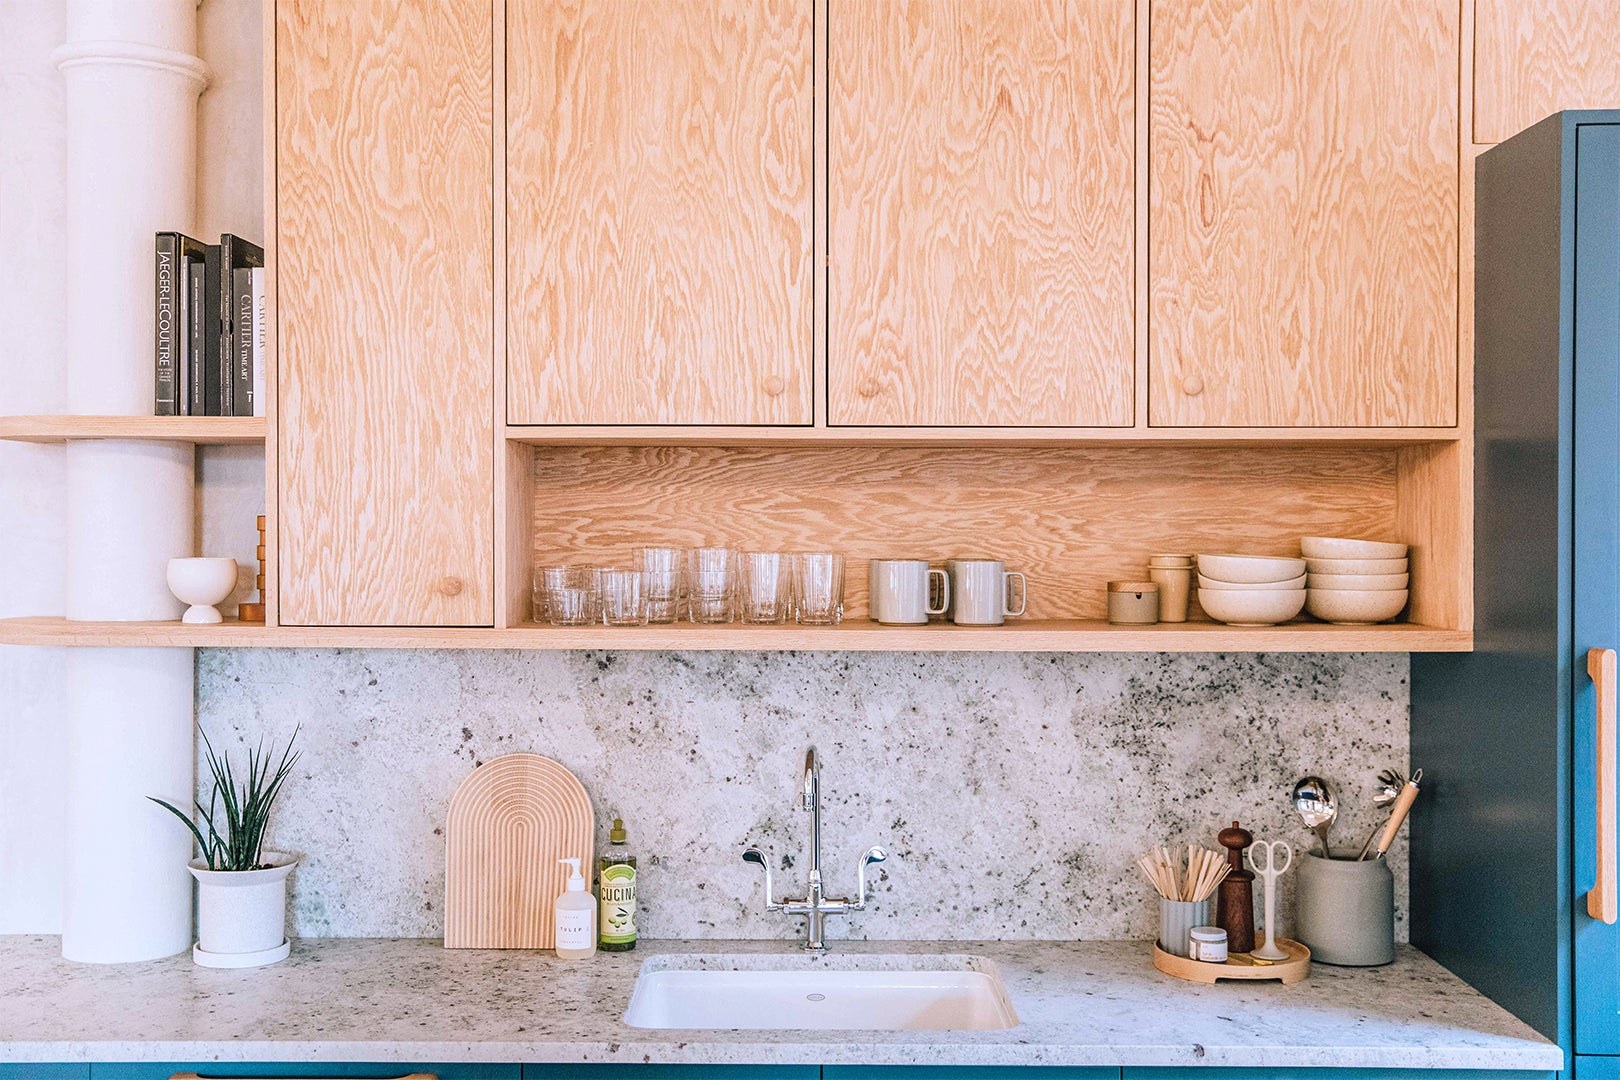 Kitchen cabinets with column